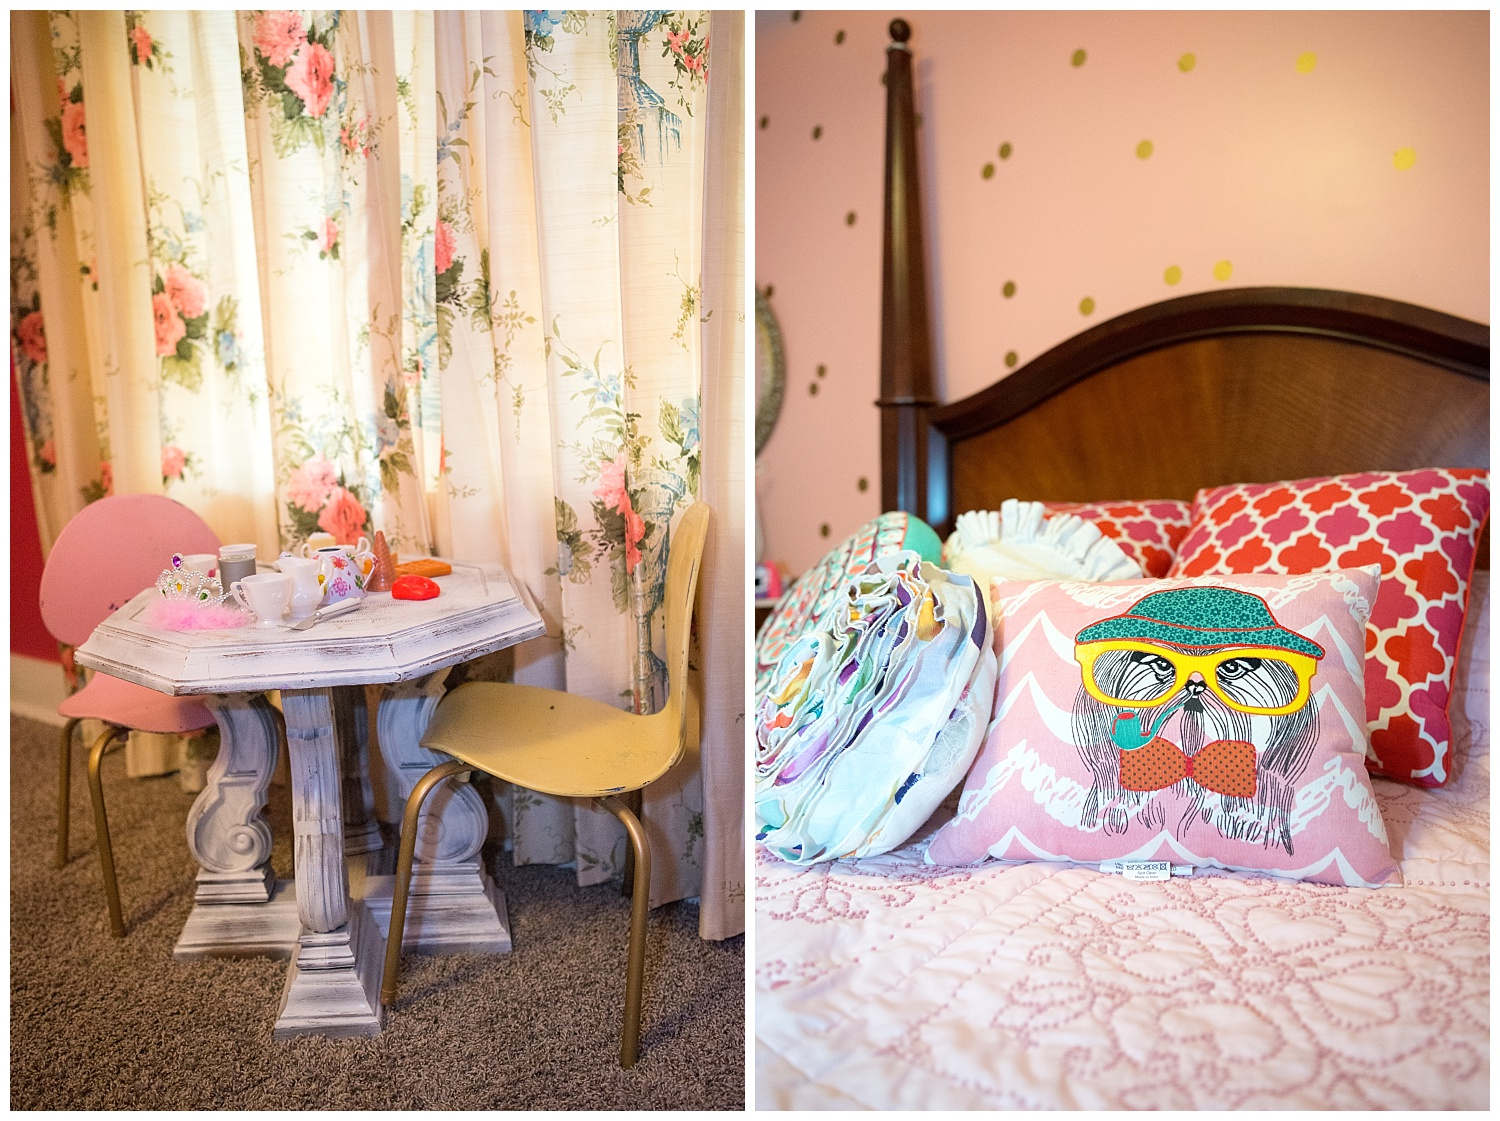 And here's Summer's room.  How dreamy are those vintage pink curtains behind the table set for tea?  We'll have to re-visit Salina's home as we've only scratched the surface.  Summer has a bathroom that is to die for.  Think the ruffliest, girliest pink shower curtain in the world.